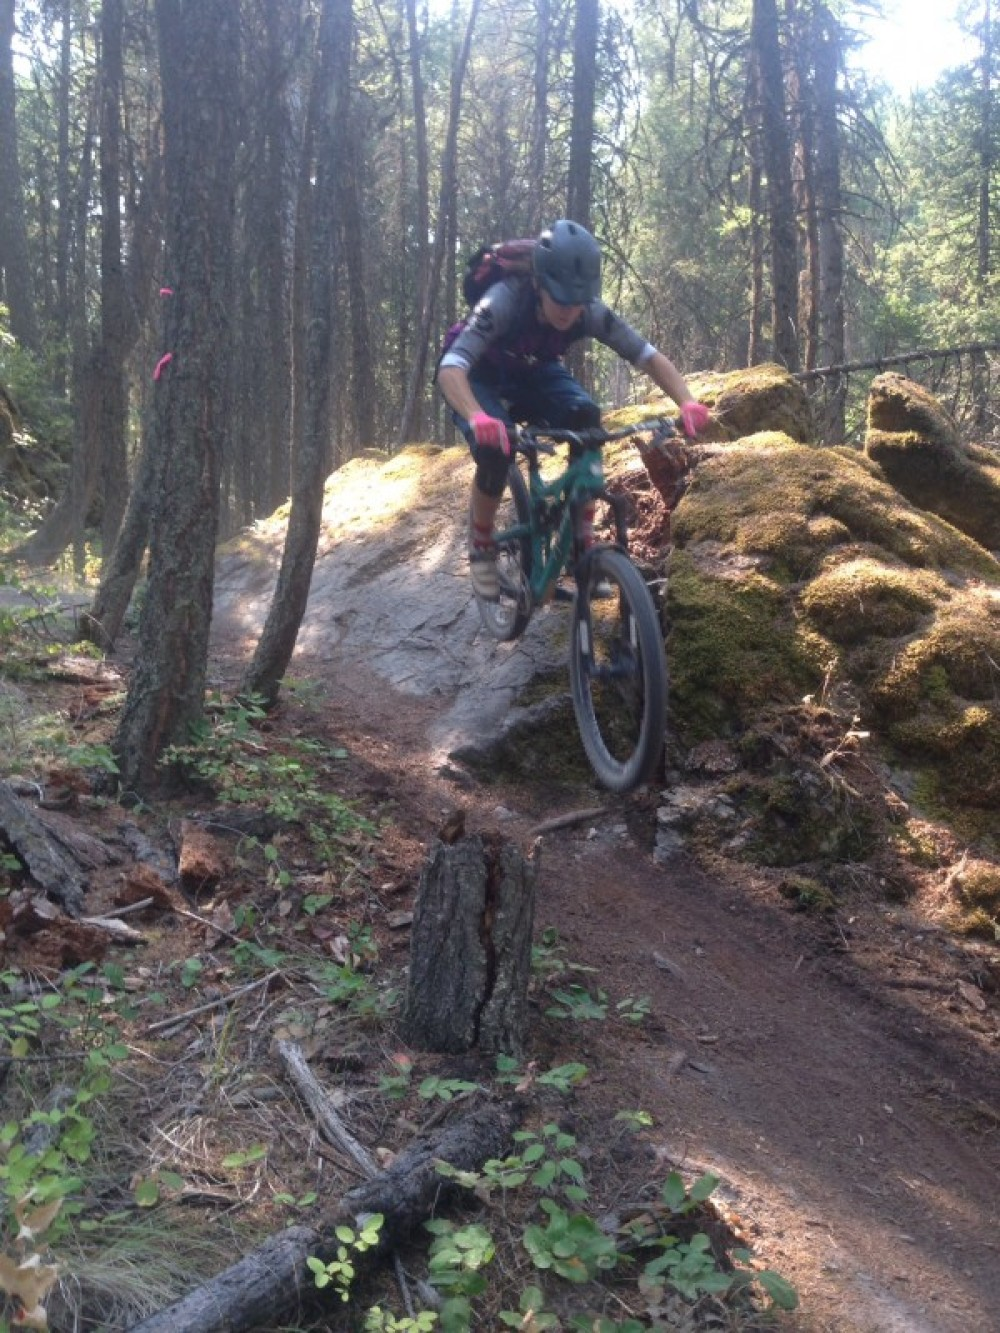 Riding at Spencer Mountain – Jessica Downing